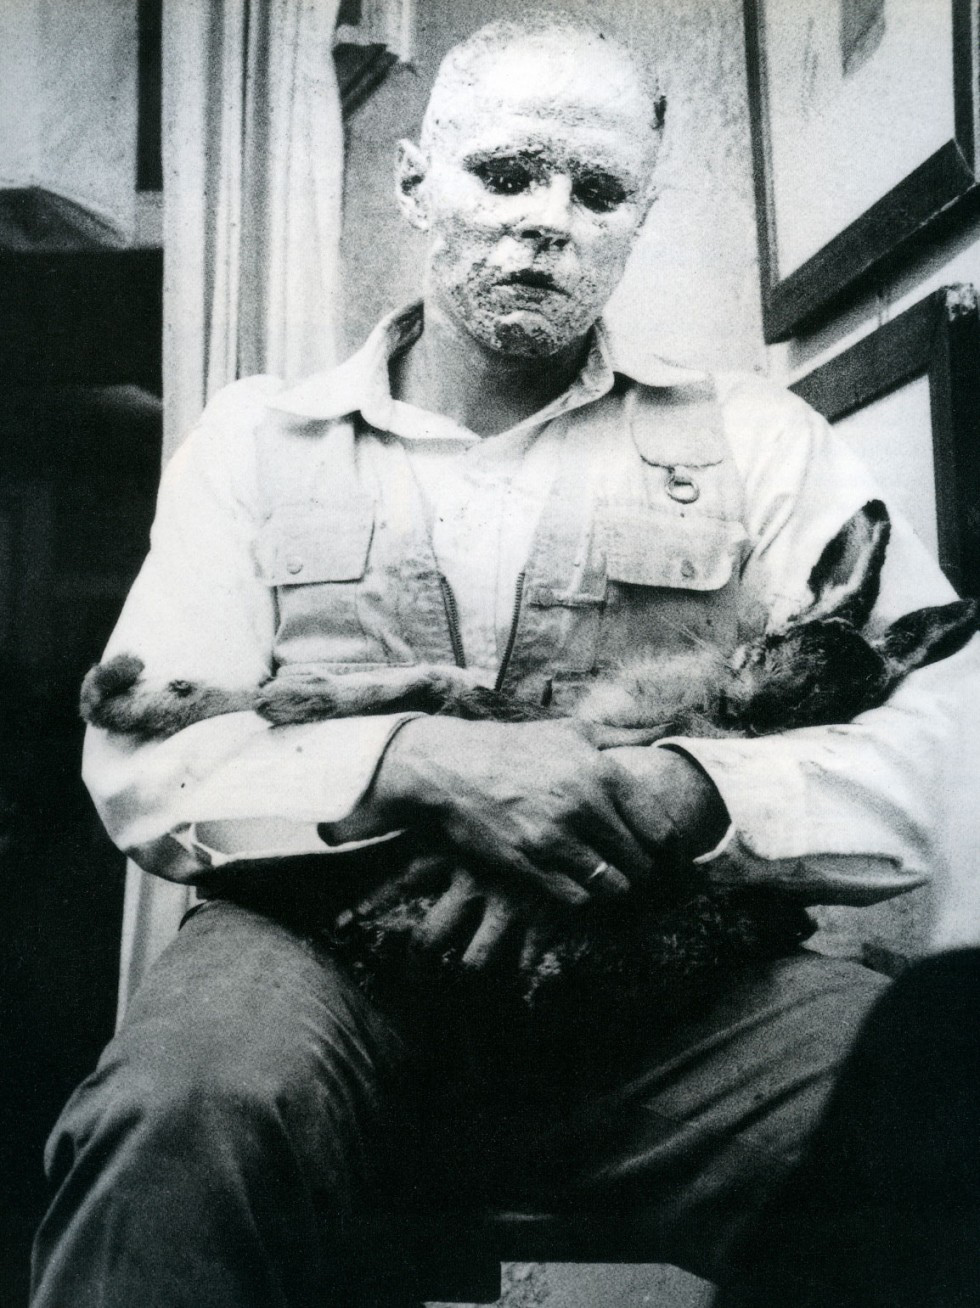 A shamanic performance by Joseph Beuys